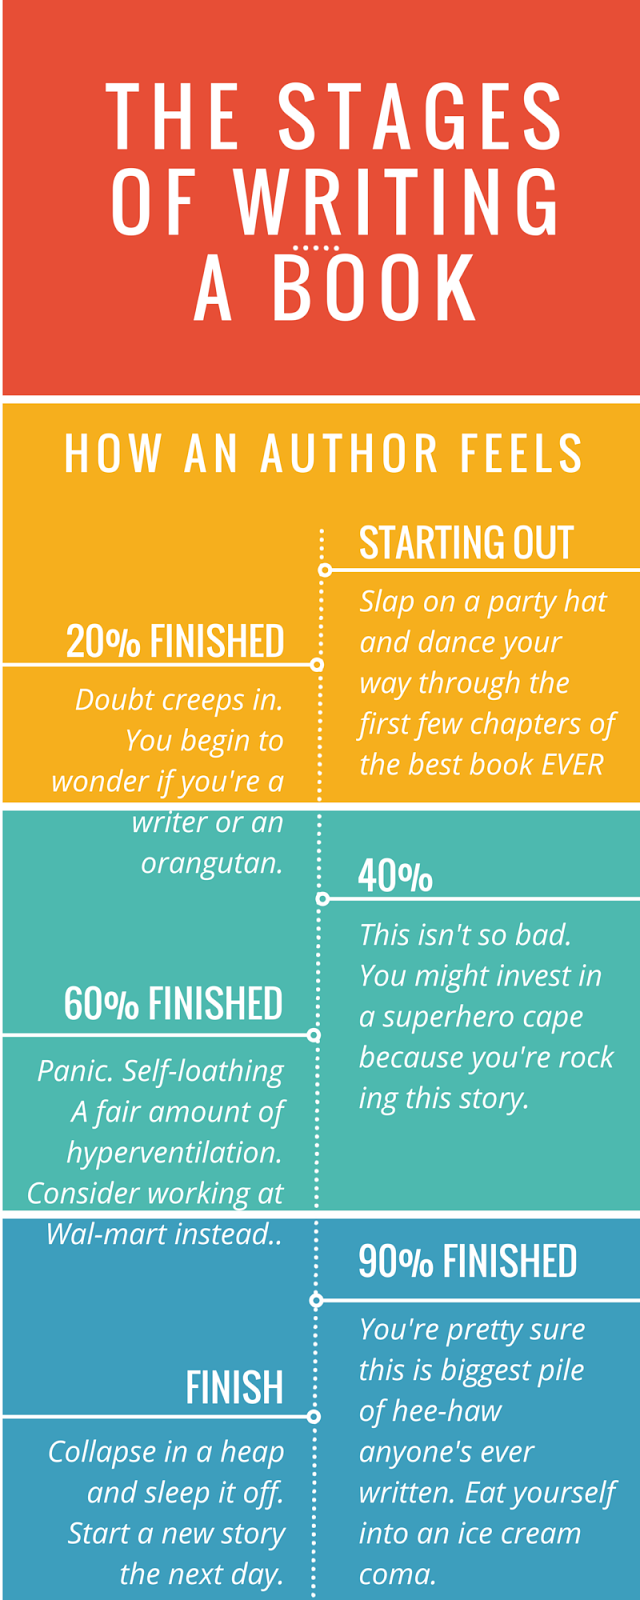 What are the stages of writing a book?